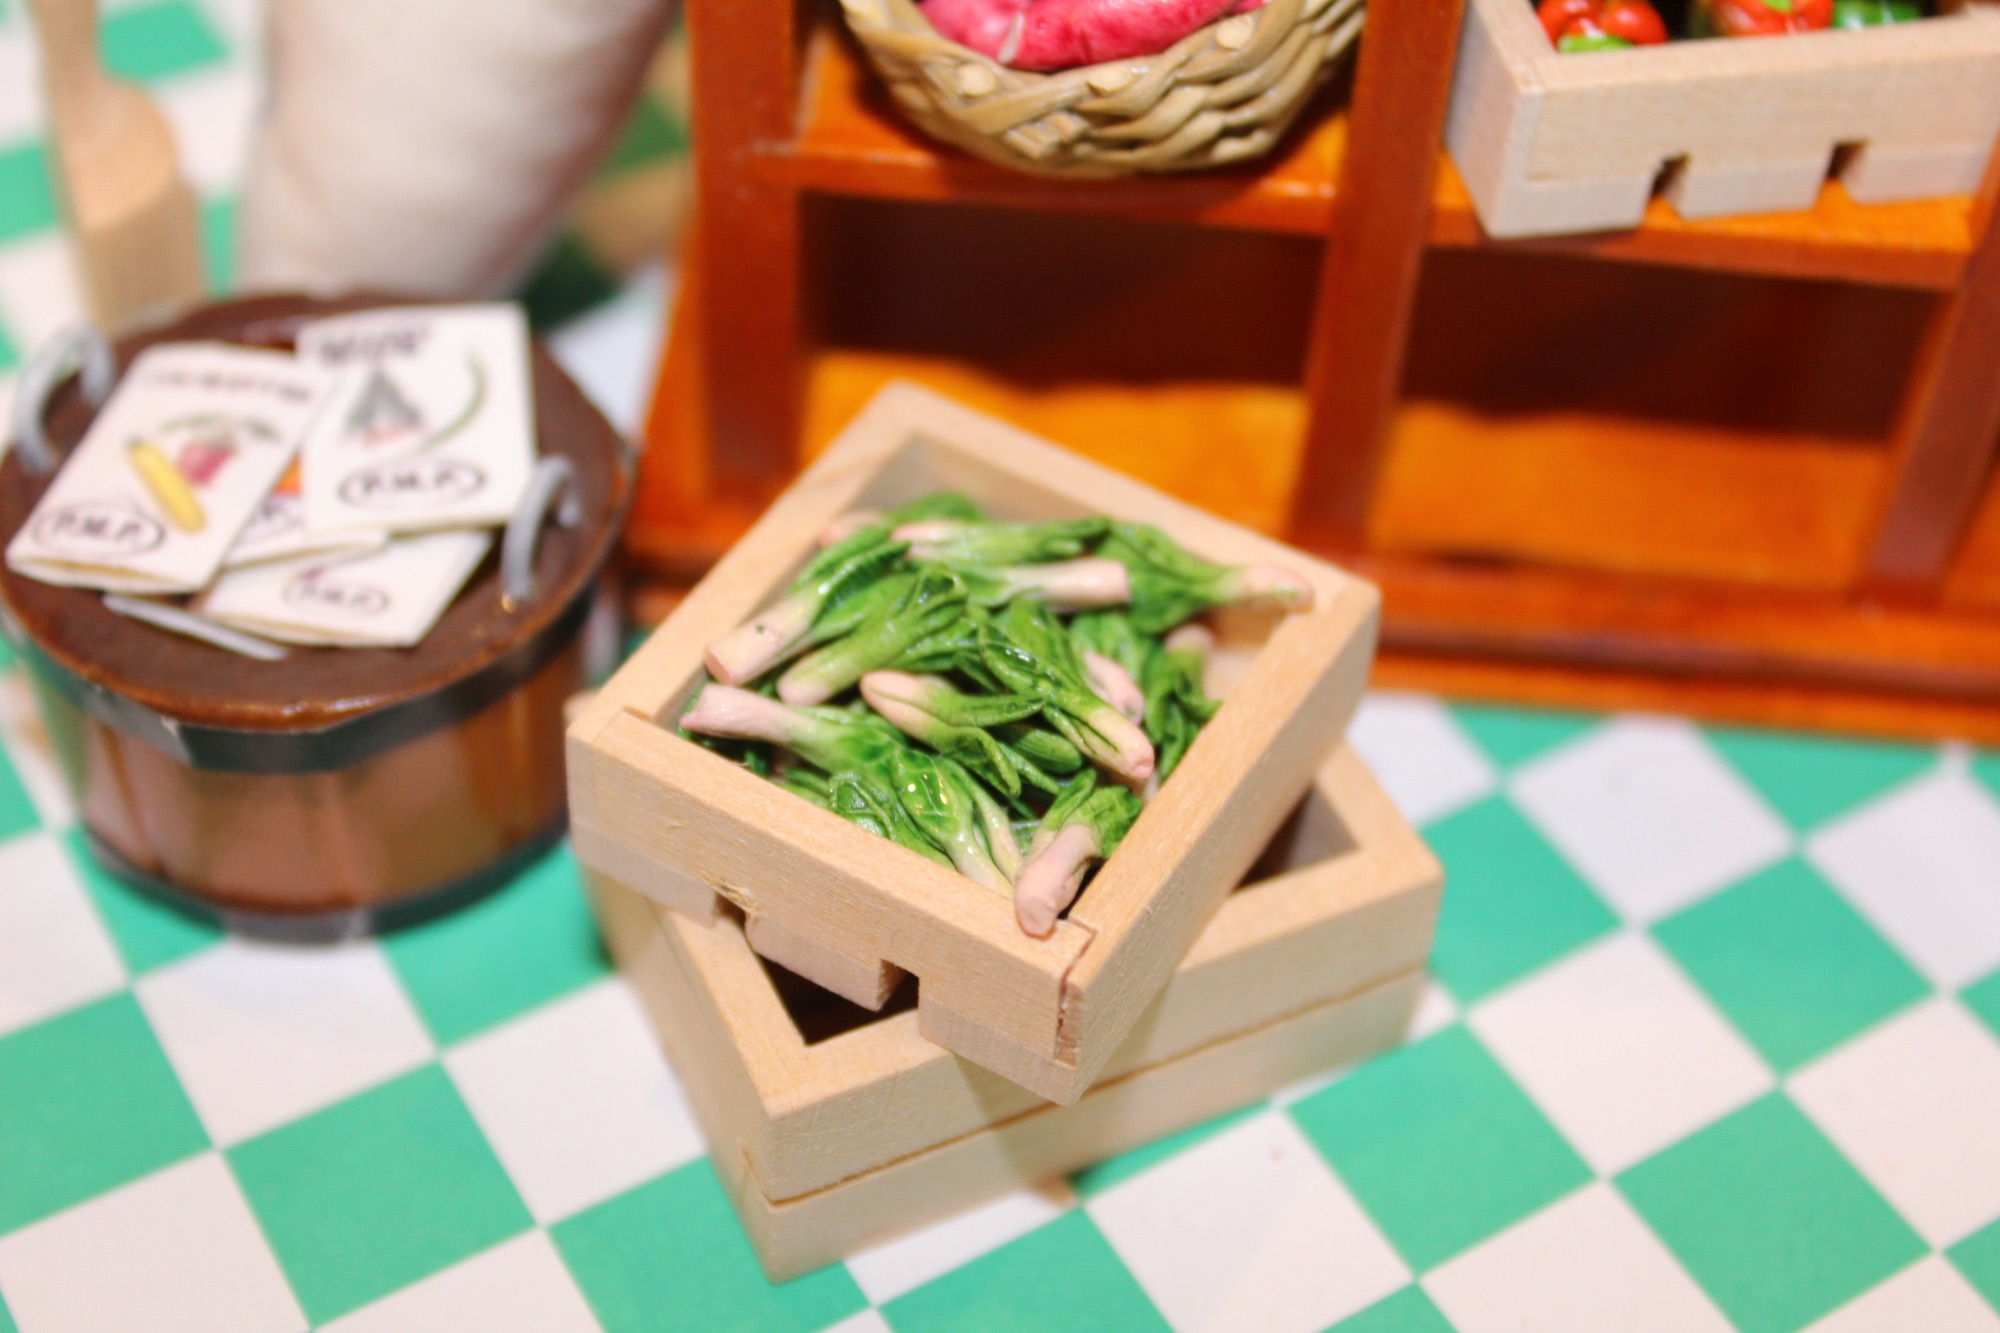 12th Scale Dolls House miniature crate and leeks with seeds